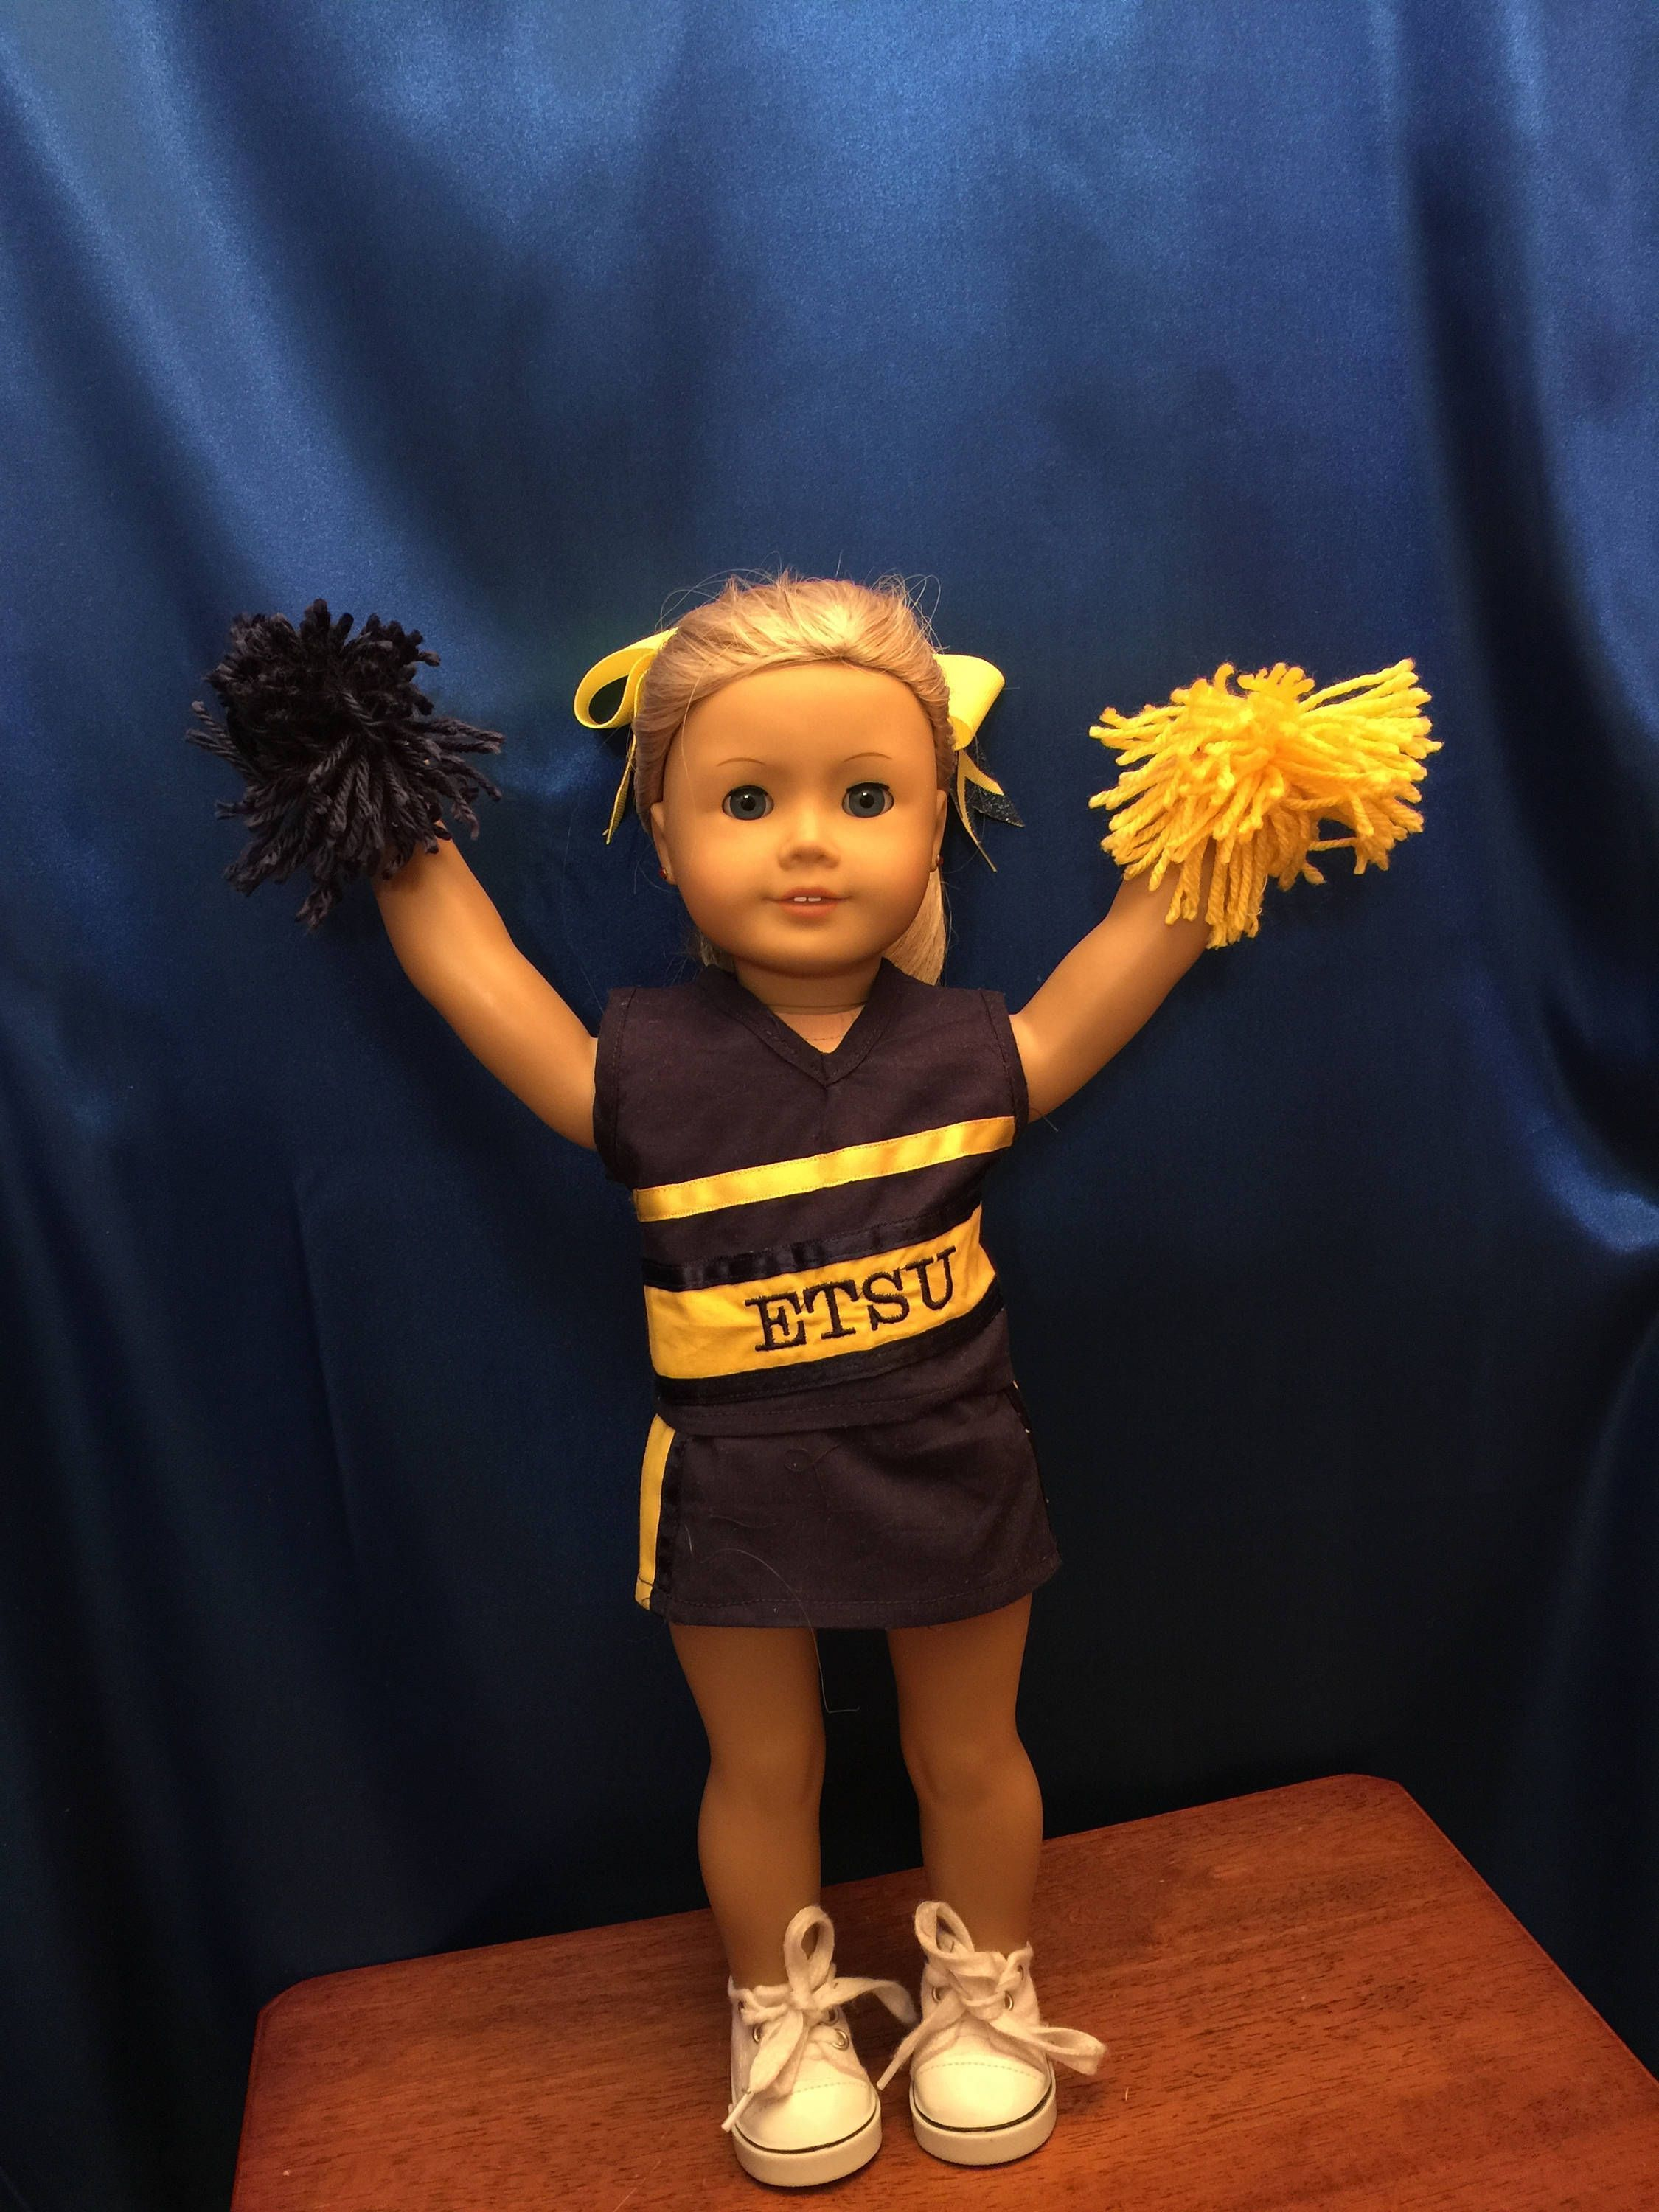 American Made ETSU Cheerleading Outfit For 18 Inch Dolls Like American Girl Dolls: Sale Includes Top, Skirt, Bloomers, Pom-poms And Hair Bow #18inchcheerleaderclothes Homemade ETSU Cheerleading Outfit For 18 Inch Dolls Like American Girl Dolls: Sale Includes Top, Skirt, Bloomers, Pompoms And Hair Bow by CutzieDollFashions on Etsy #18inchcheerleaderclothes American Made ETSU Cheerleading Outfit For 18 Inch Dolls Like American Girl Dolls: Sale Includes Top, Skirt, Bloomers, Pom-poms And Hair Bow # #18inchcheerleaderclothes